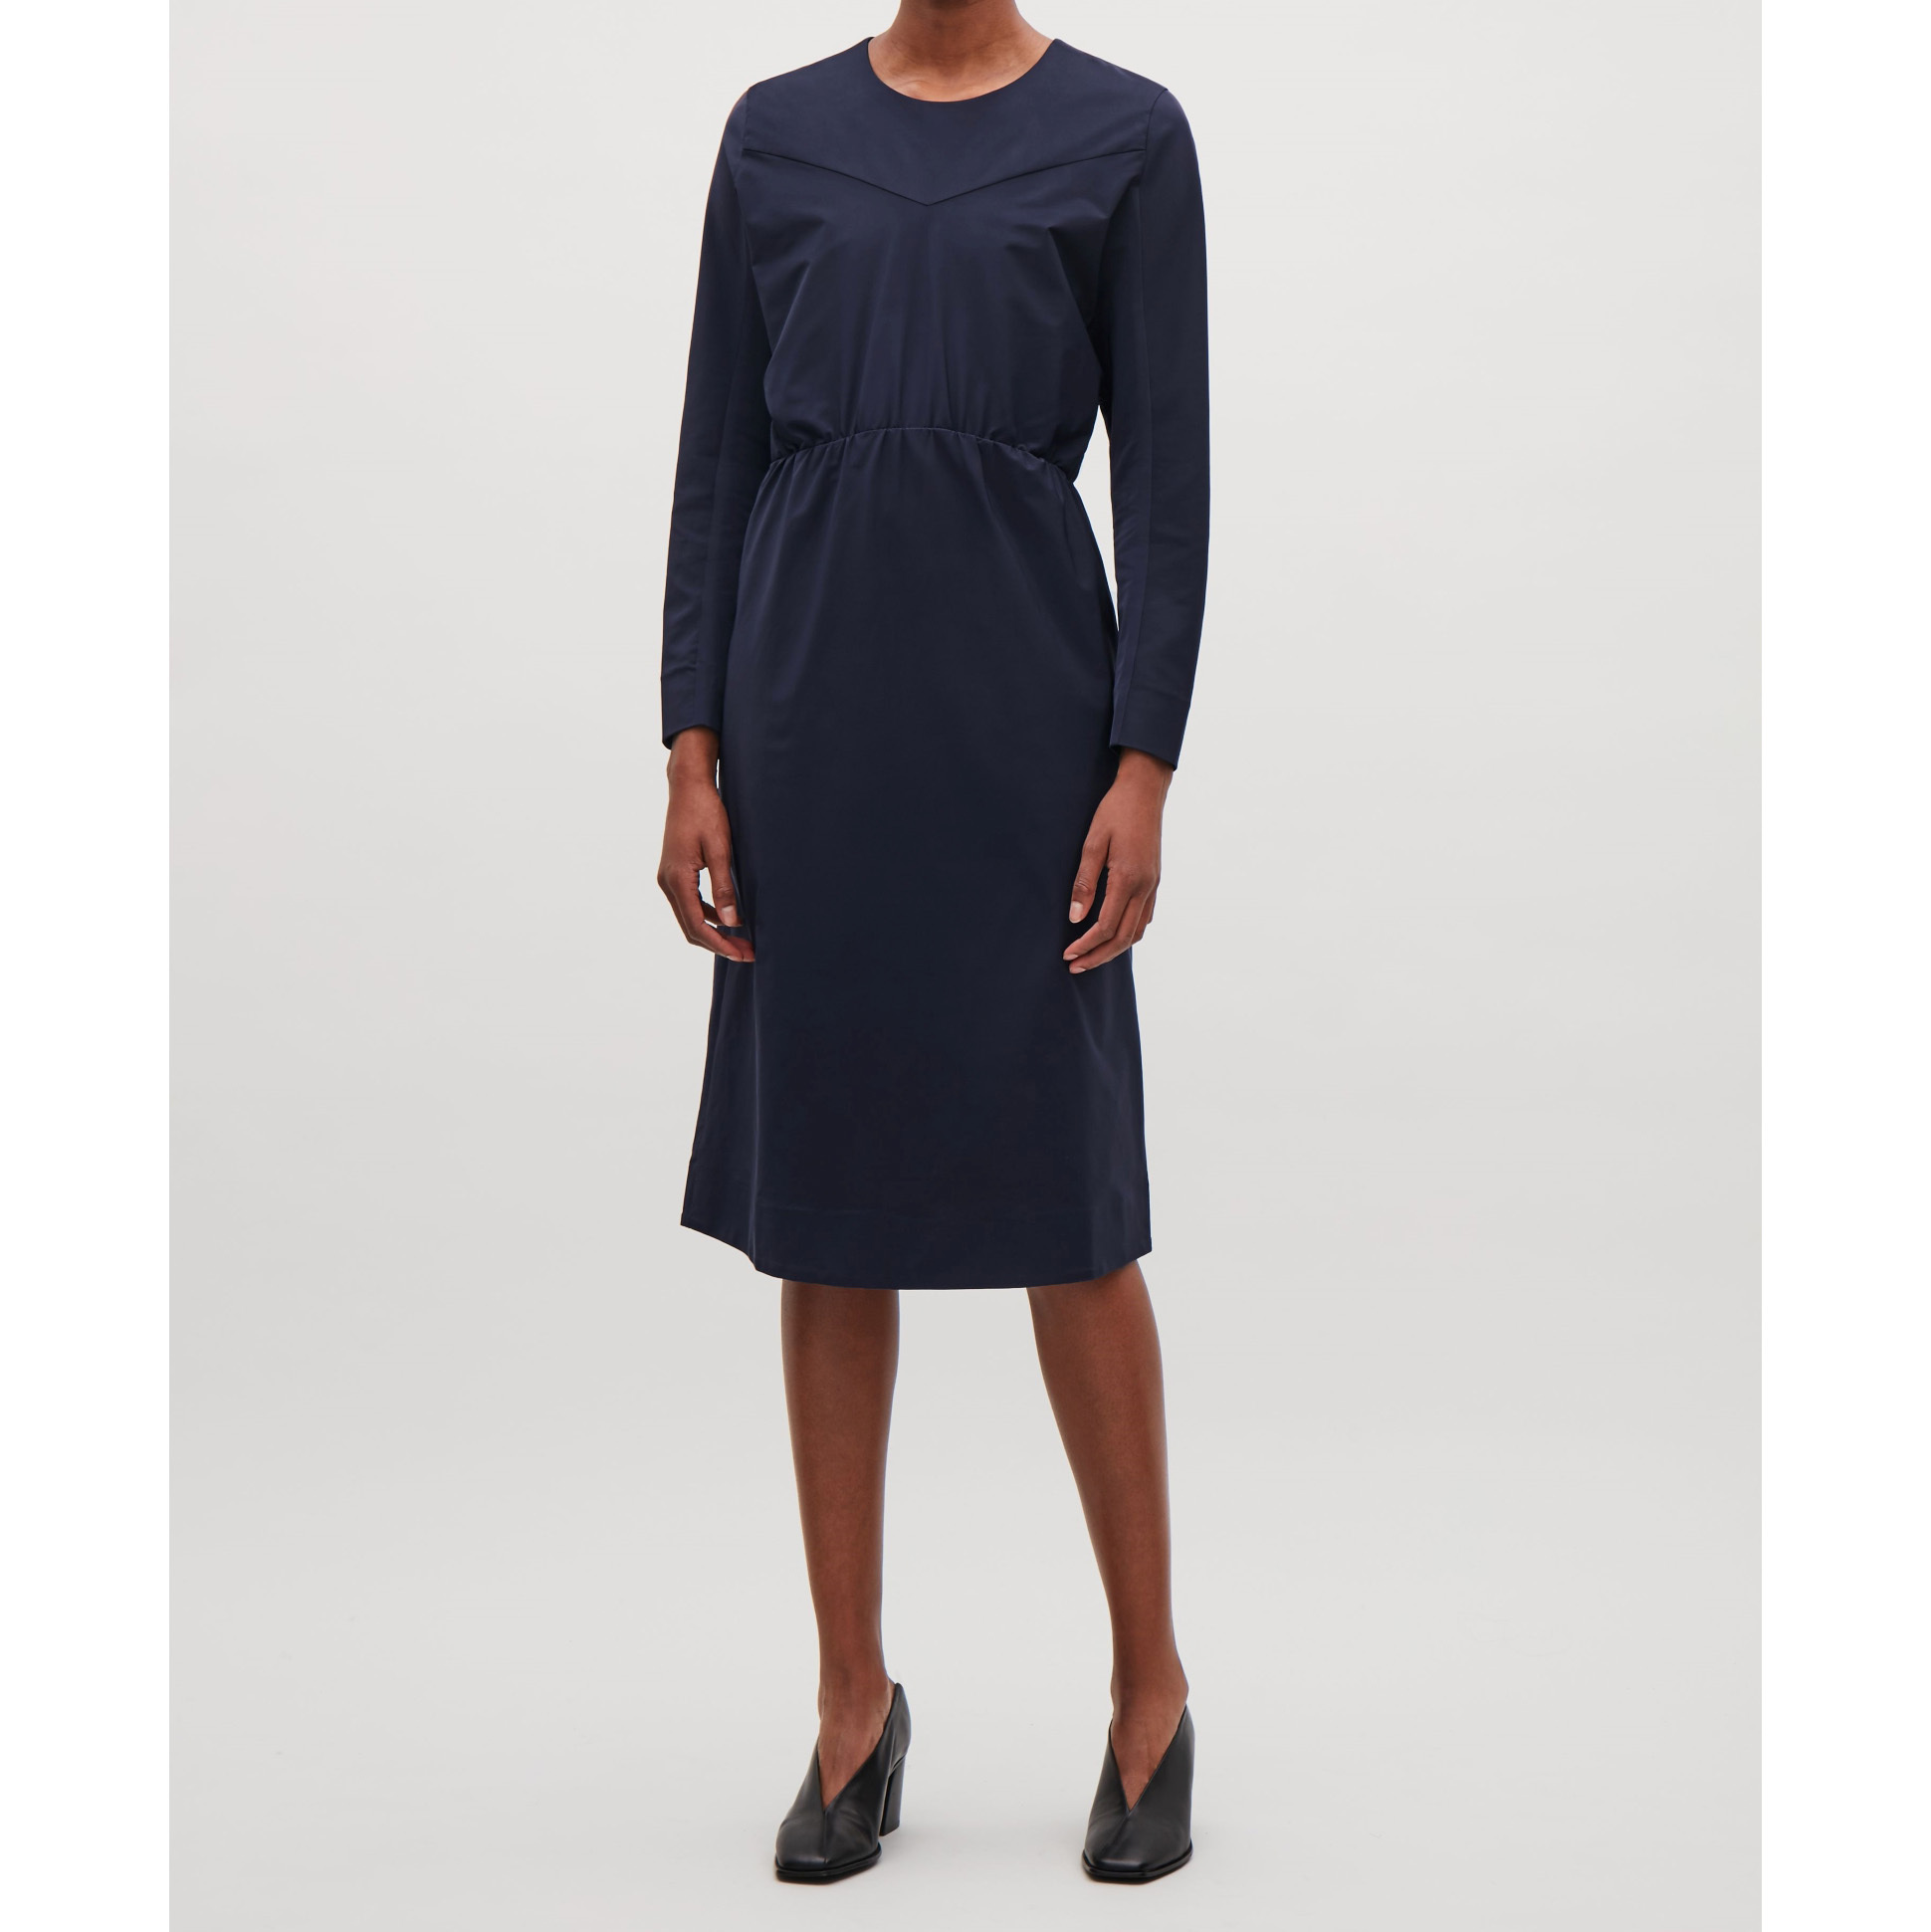 COS☆DRESS WITH TWO-PIECE SLEEVES / navy